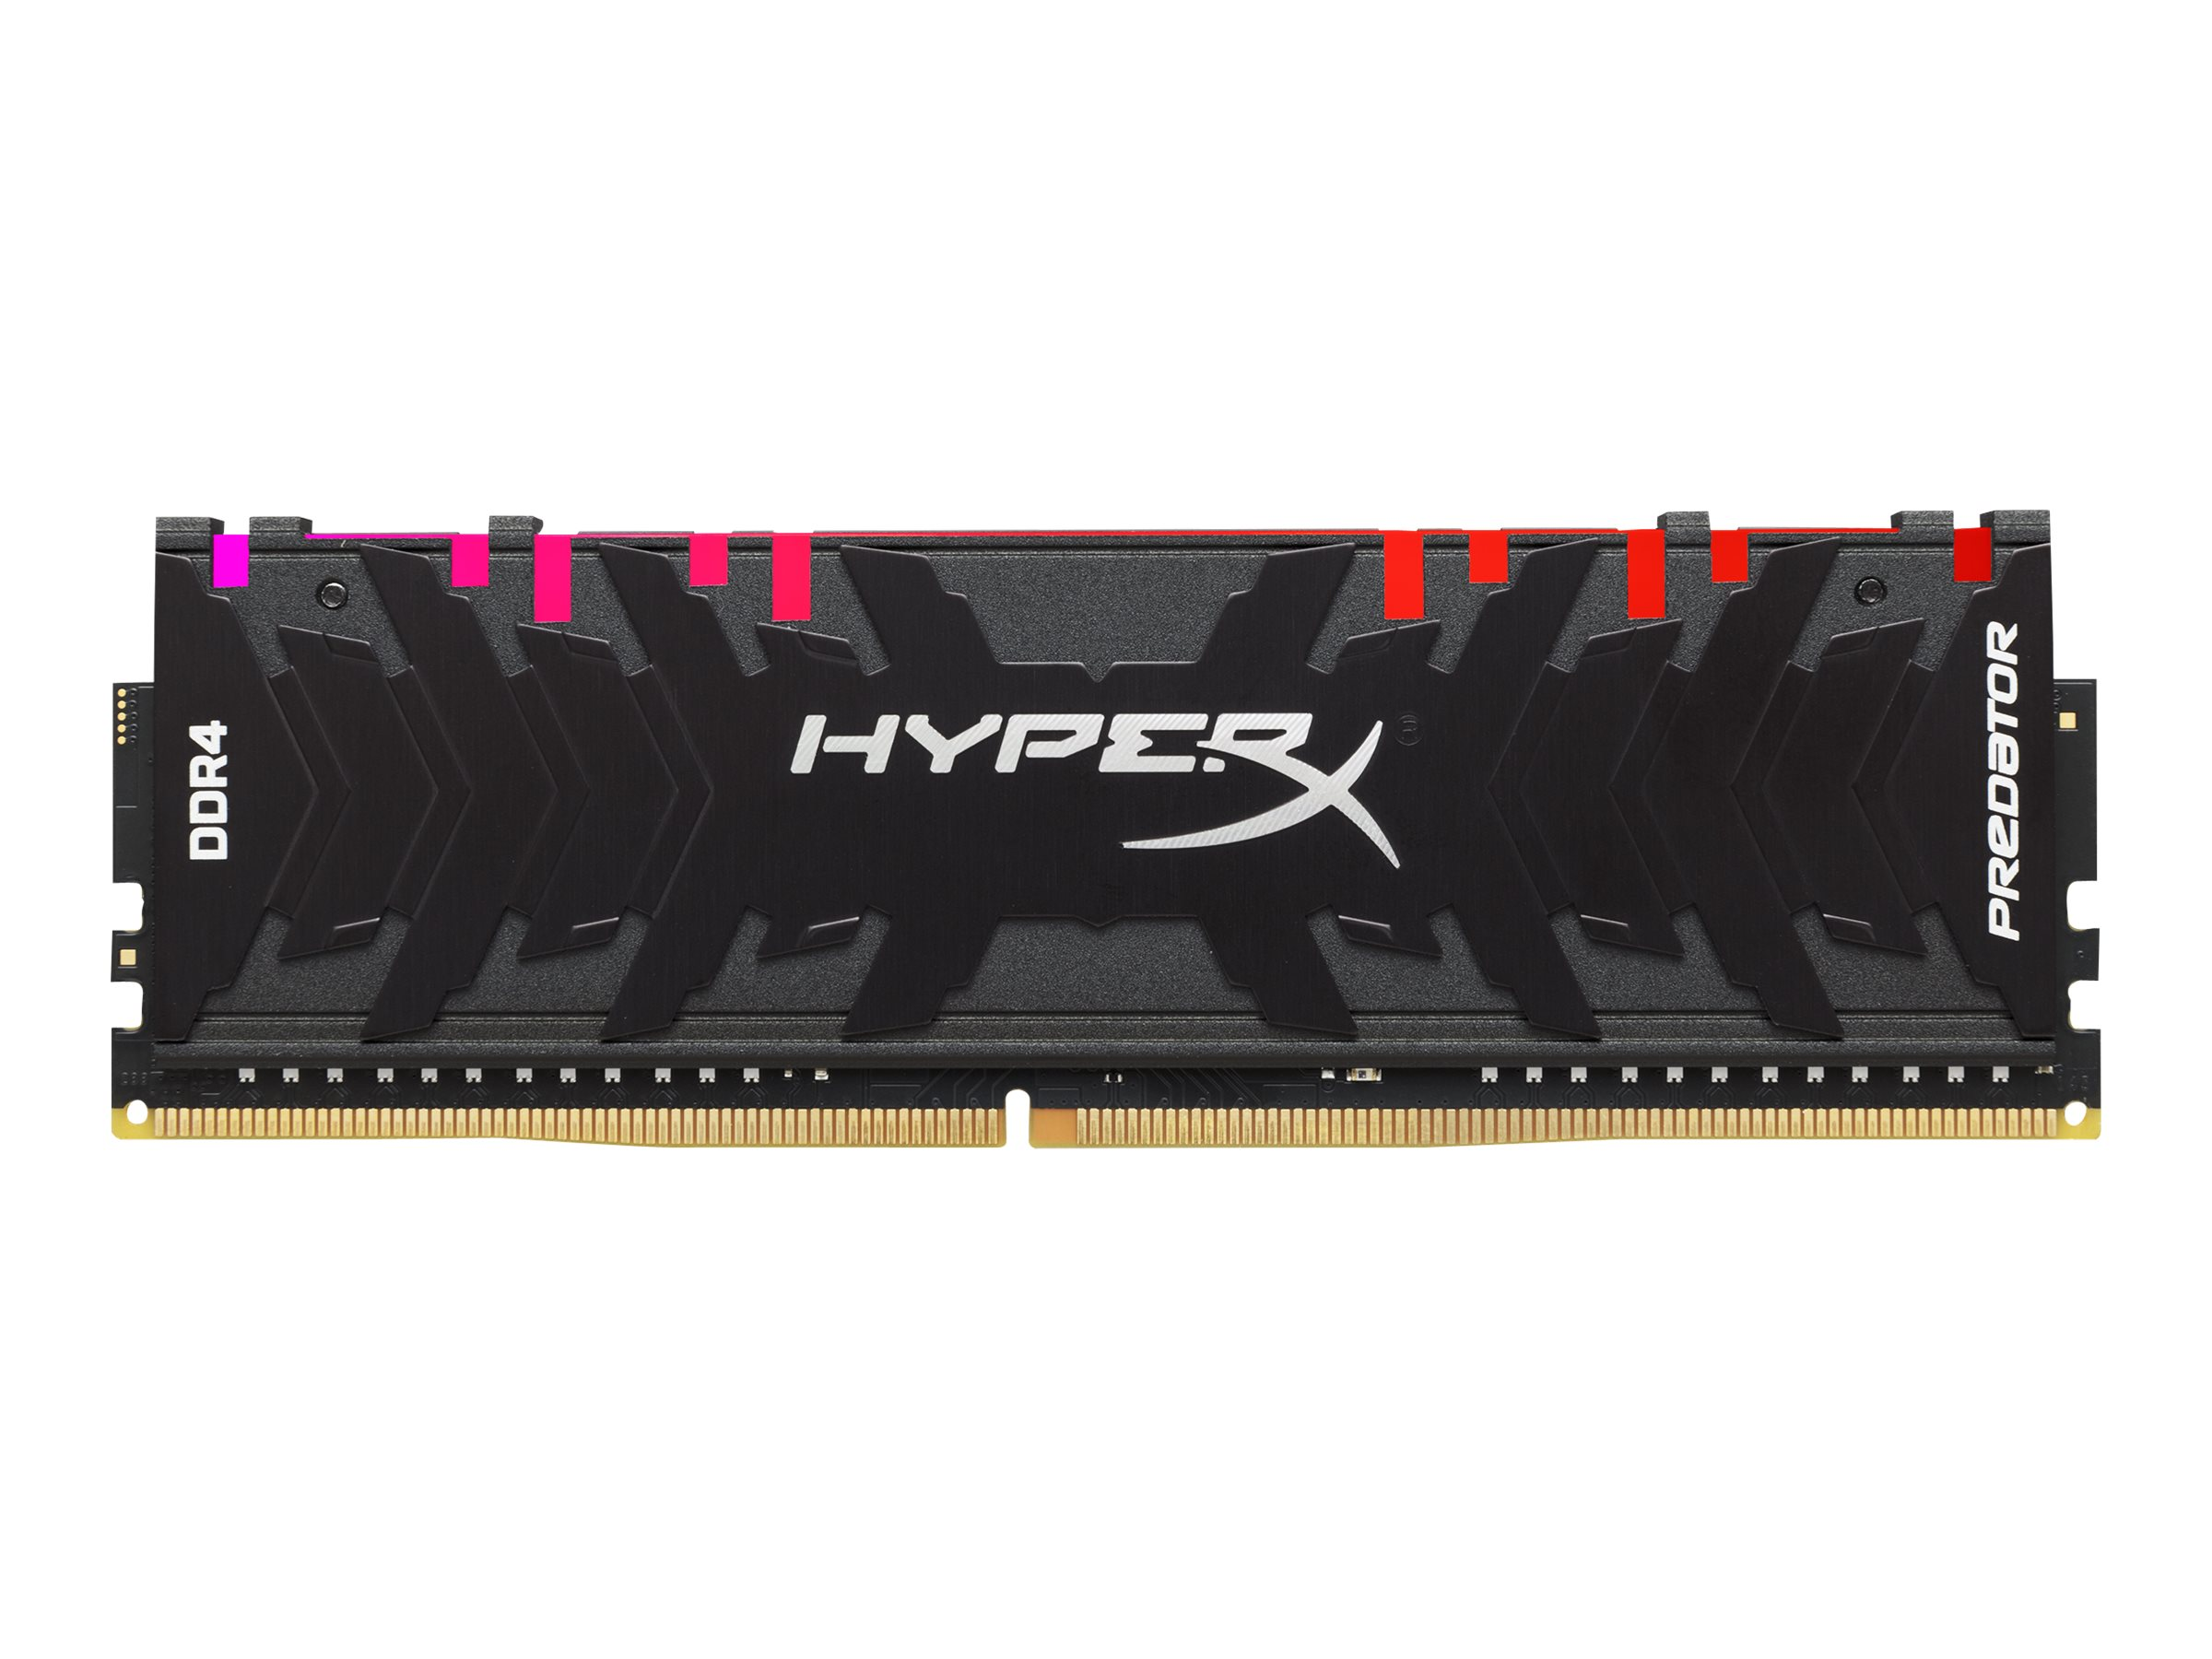 HyperX Predator RGB - DDR4 - kit - 16 GB: 2 x 8 GB - DIMM 288-pin - unbuffered